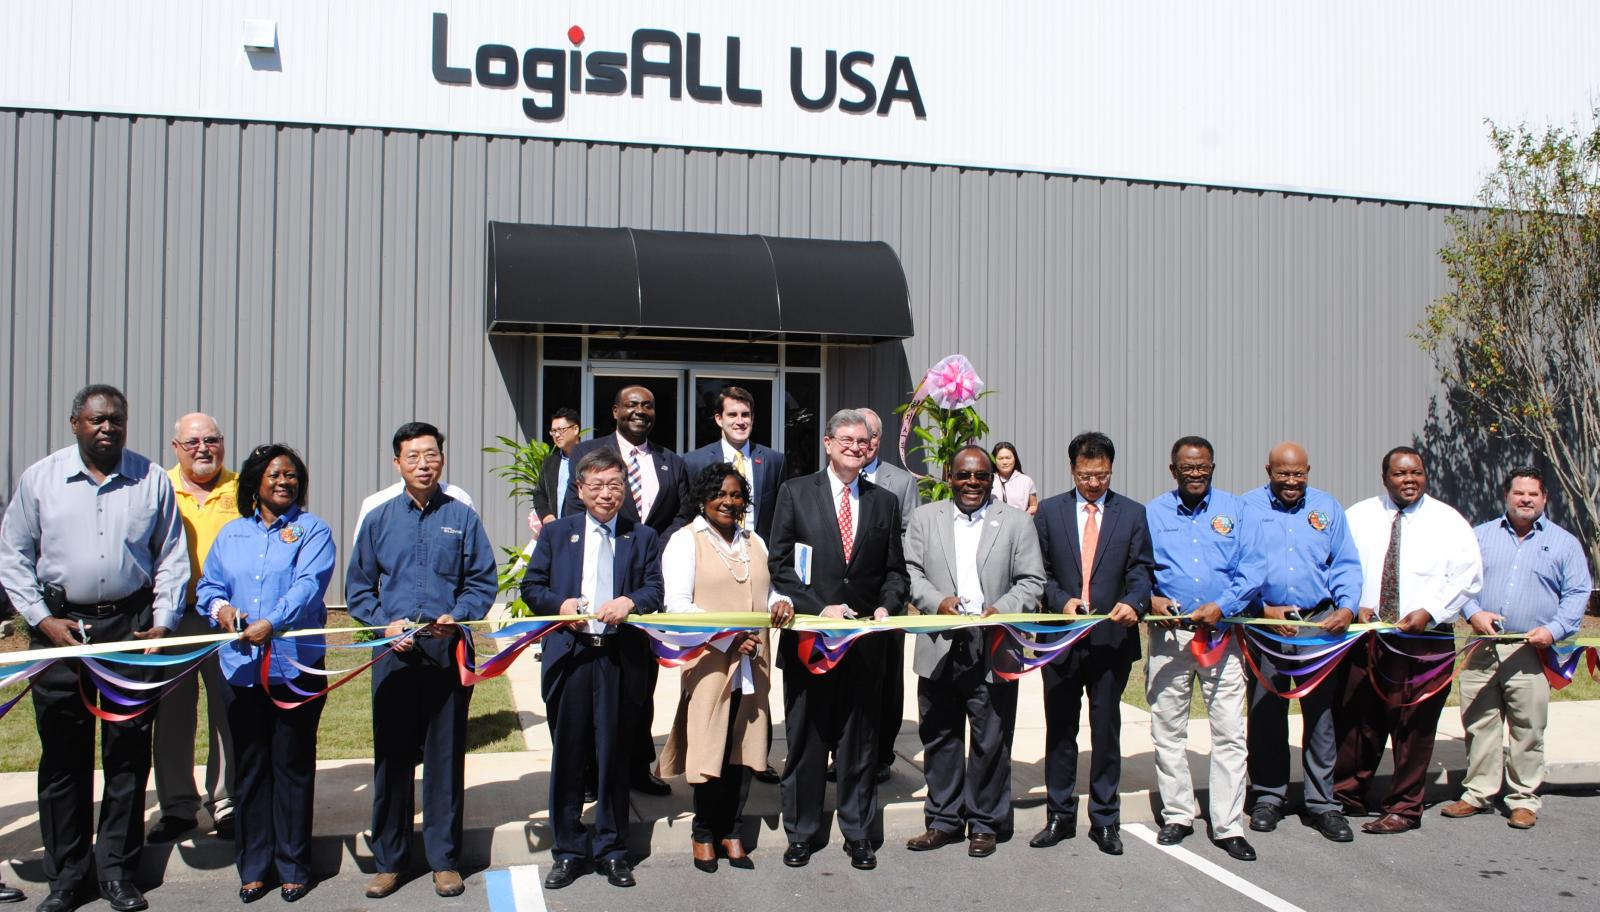 LogisALL USA Branch in Shorter, Alabama